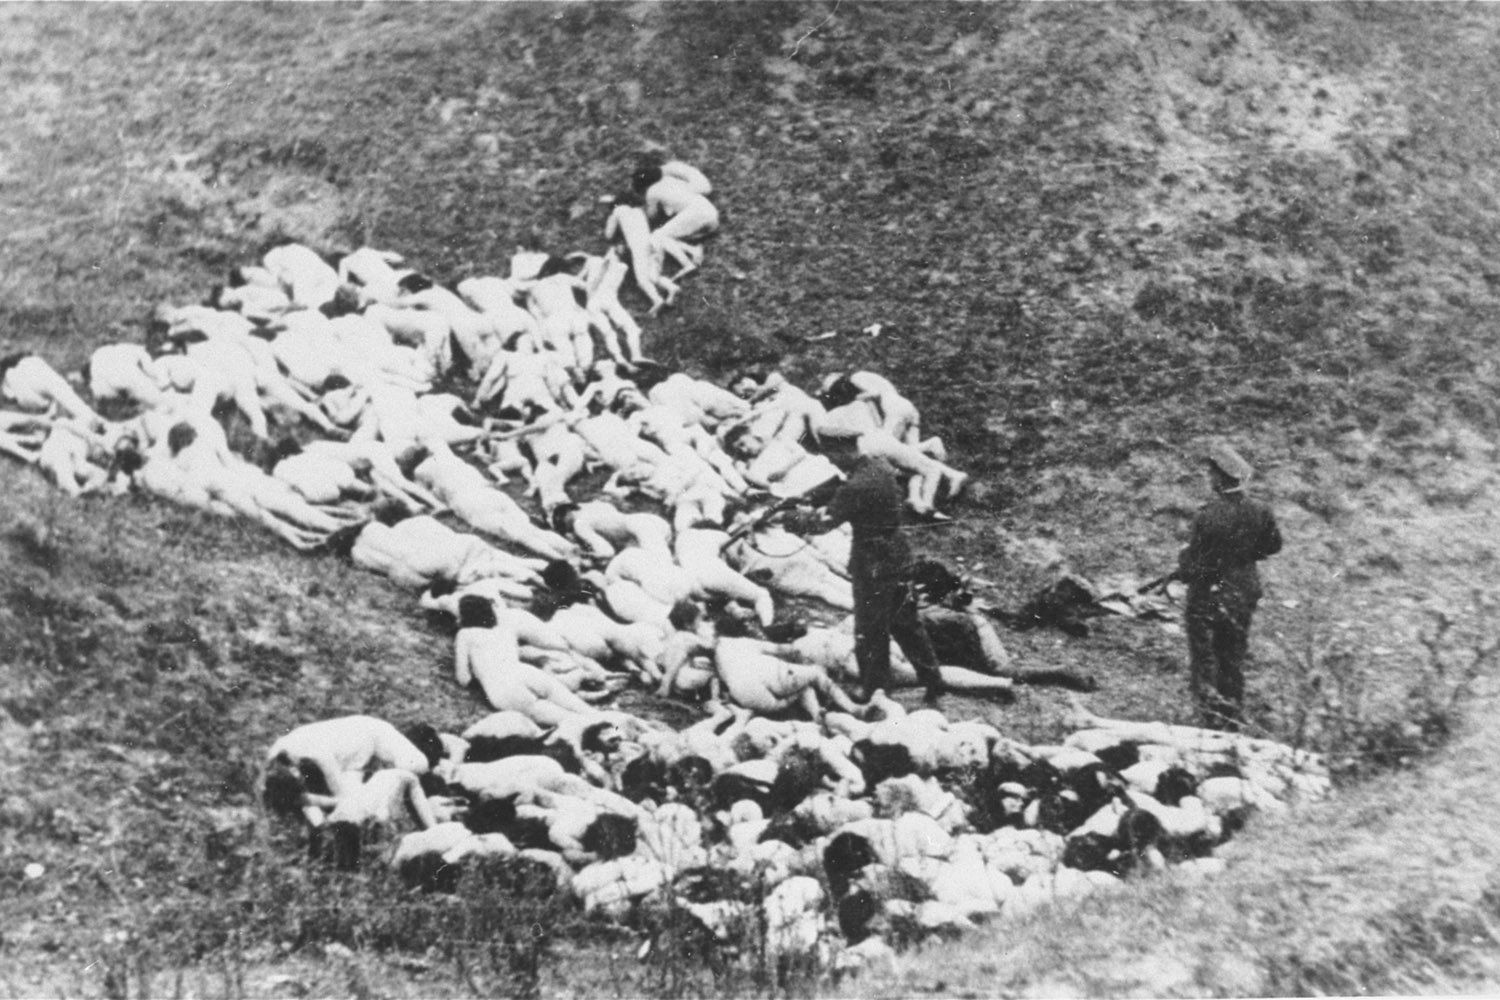 A German police officer shoots Jewish women still alive after a mass execution of Jews from the Mizocz ghetto, former Poland, 1942.